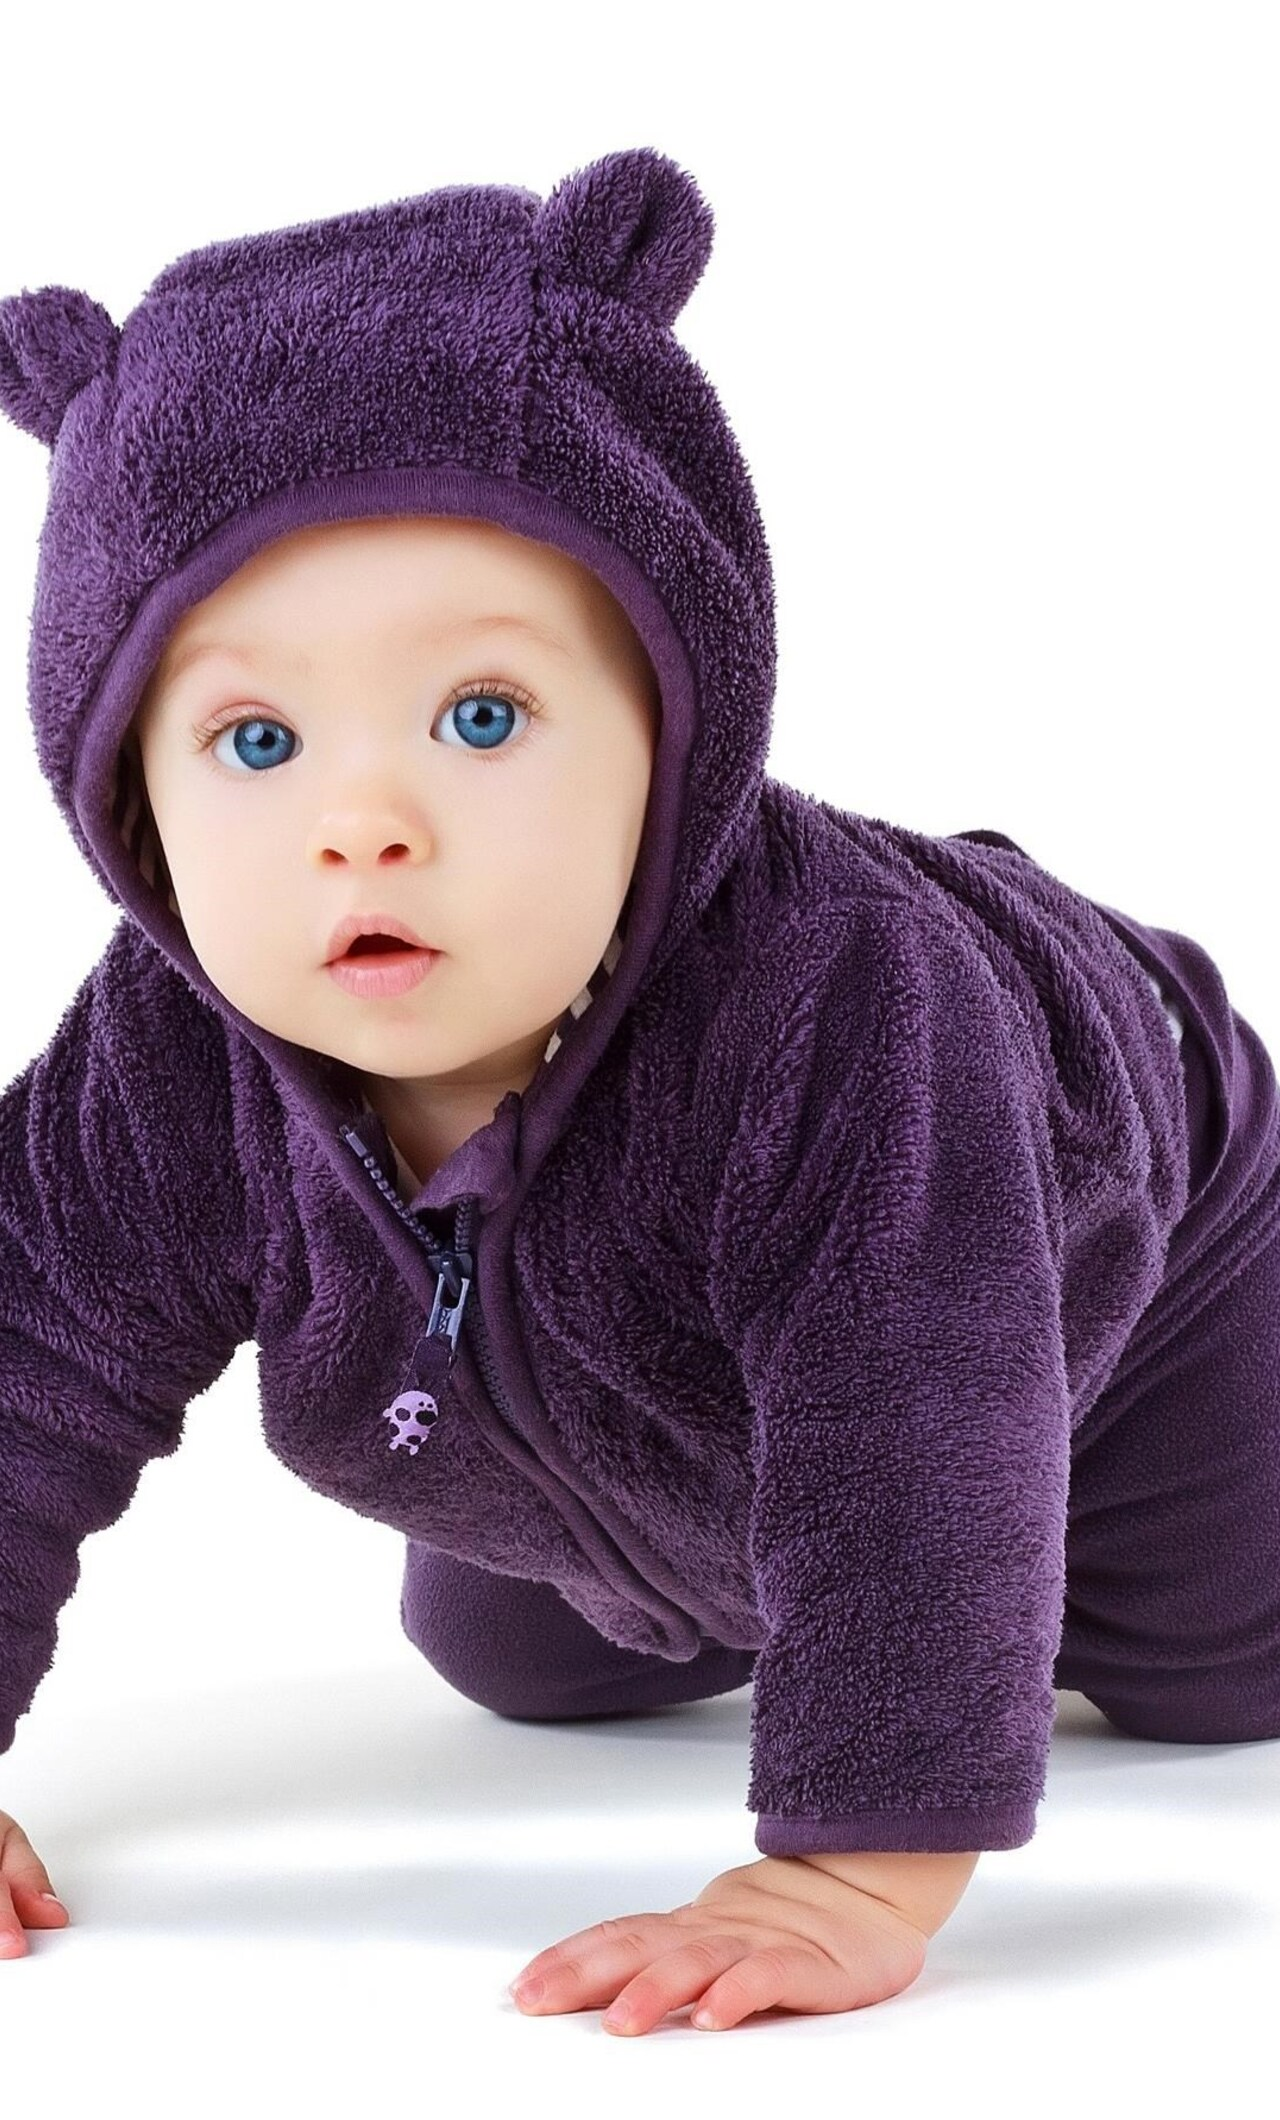 1280x2120 cute child baby iphone 6+ hd 4k wallpapers, images